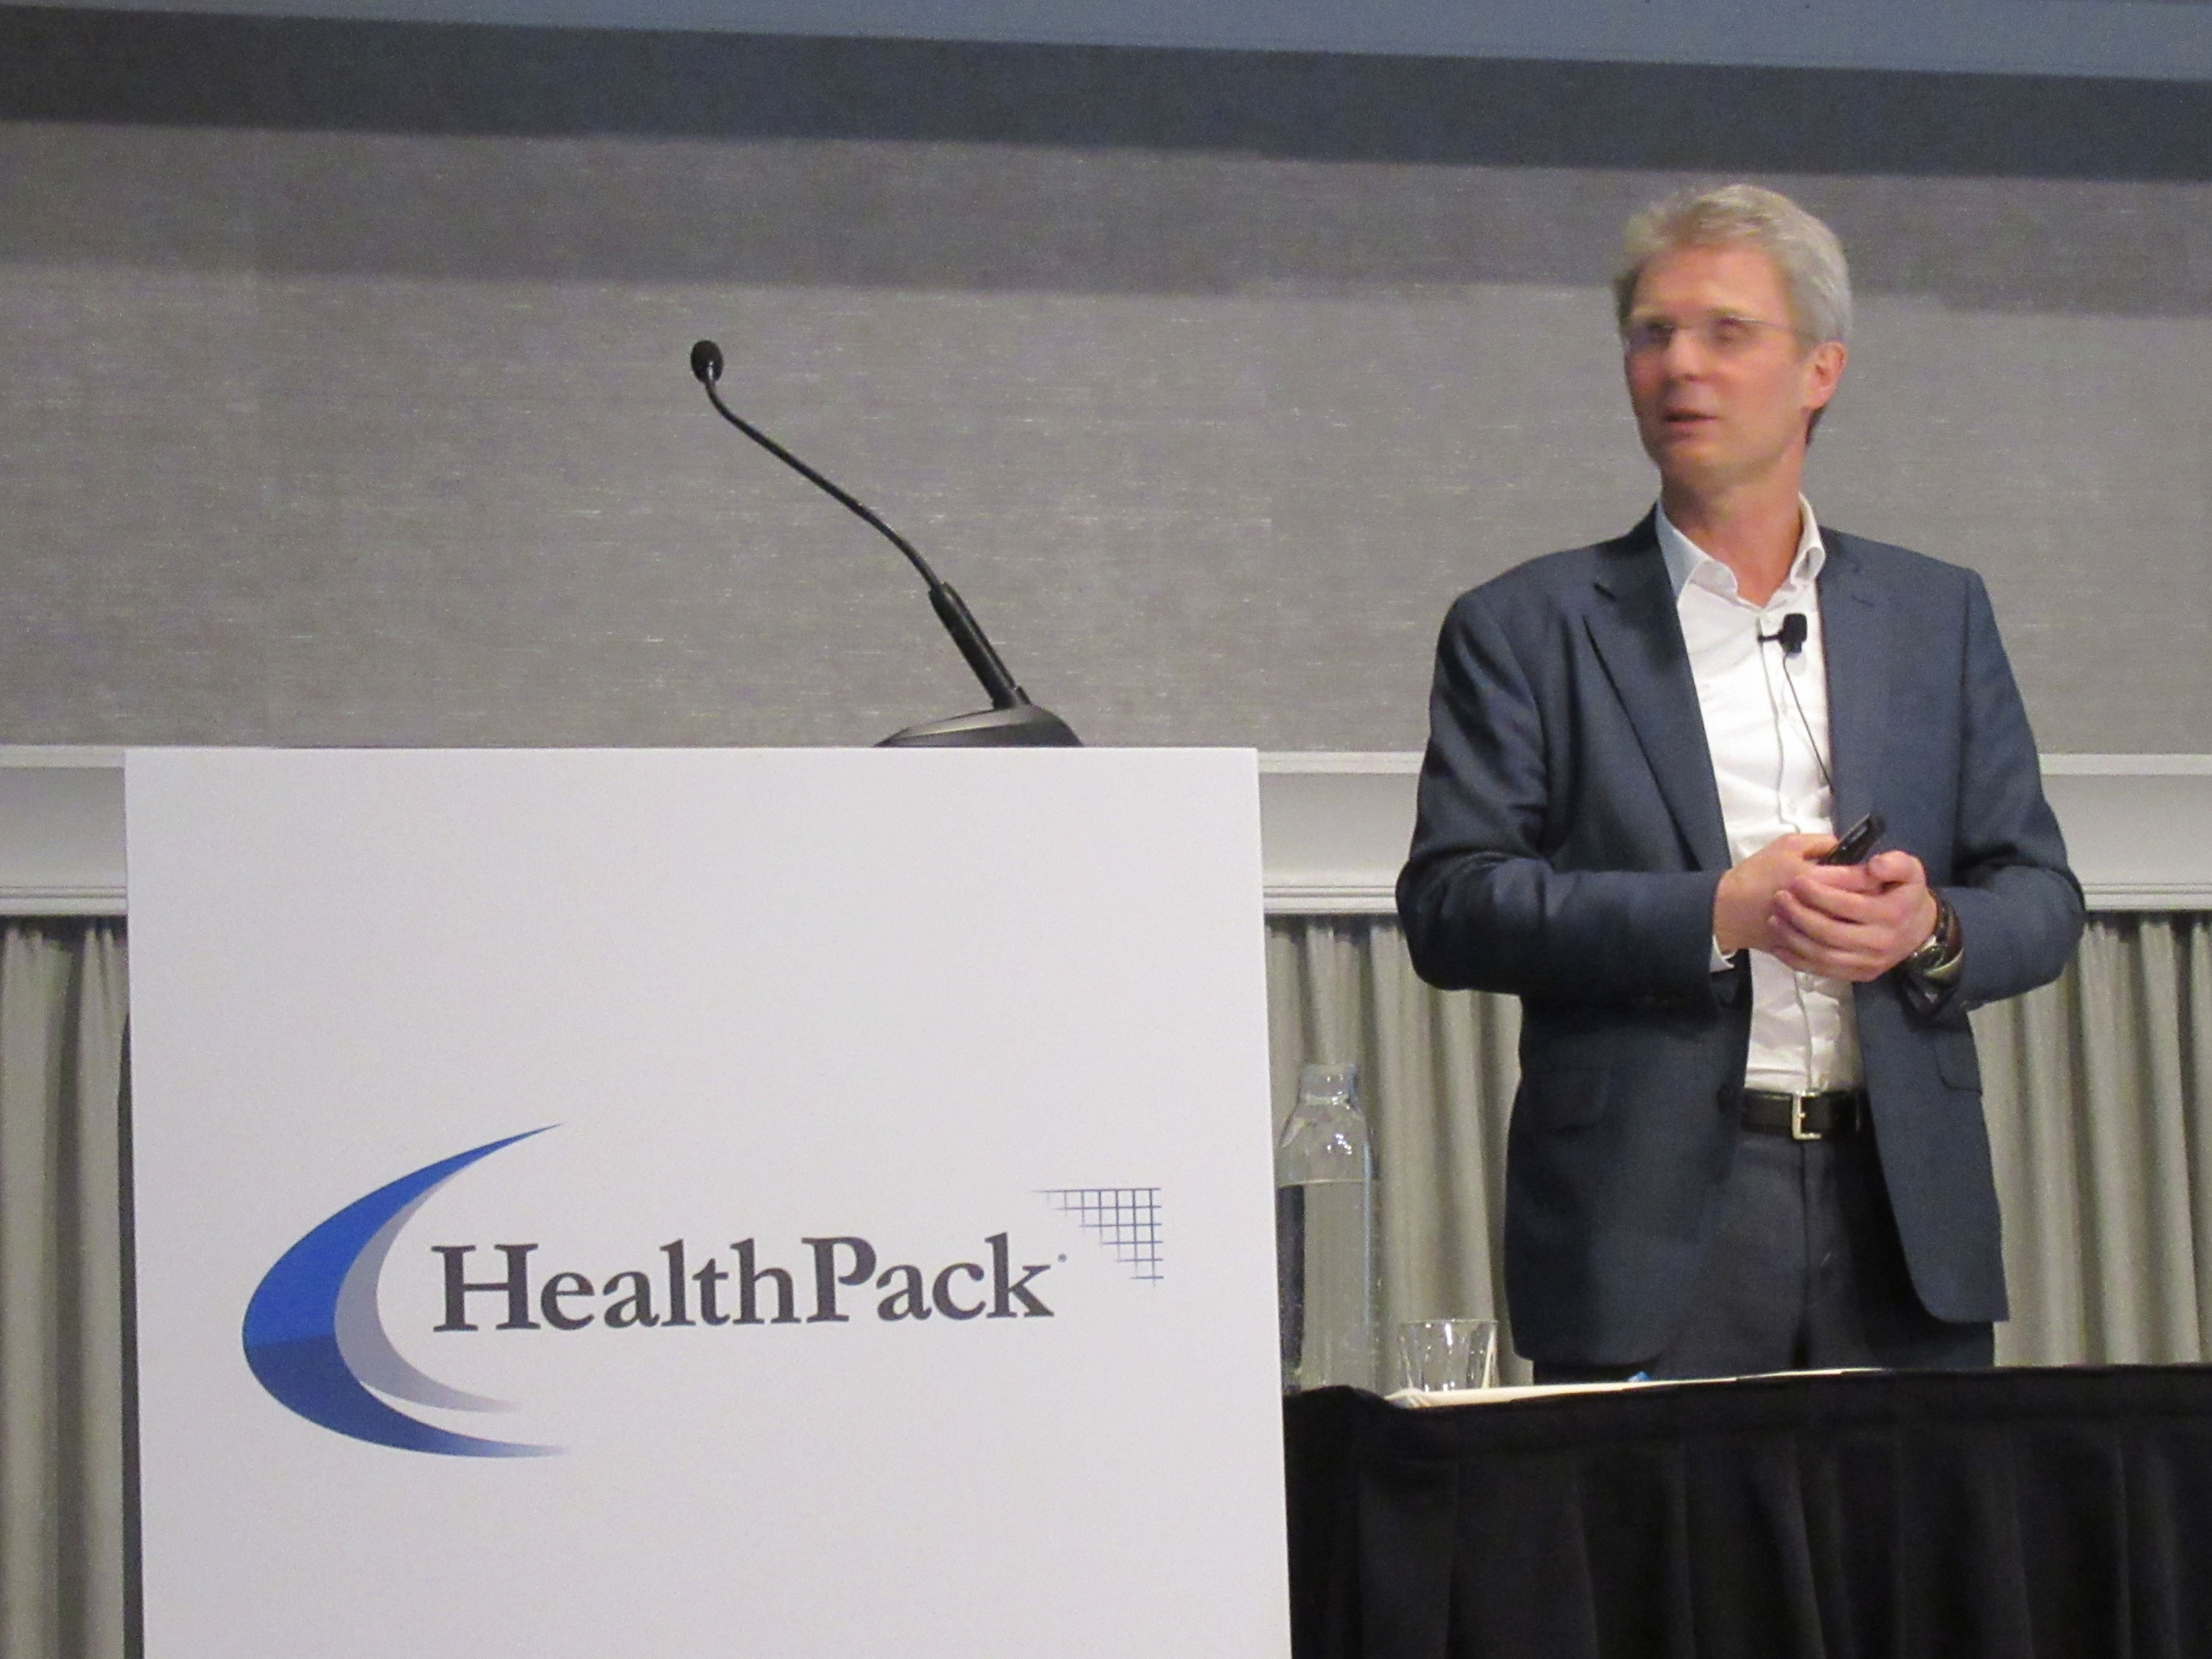 Thierry Wagner at HealthPack 2019